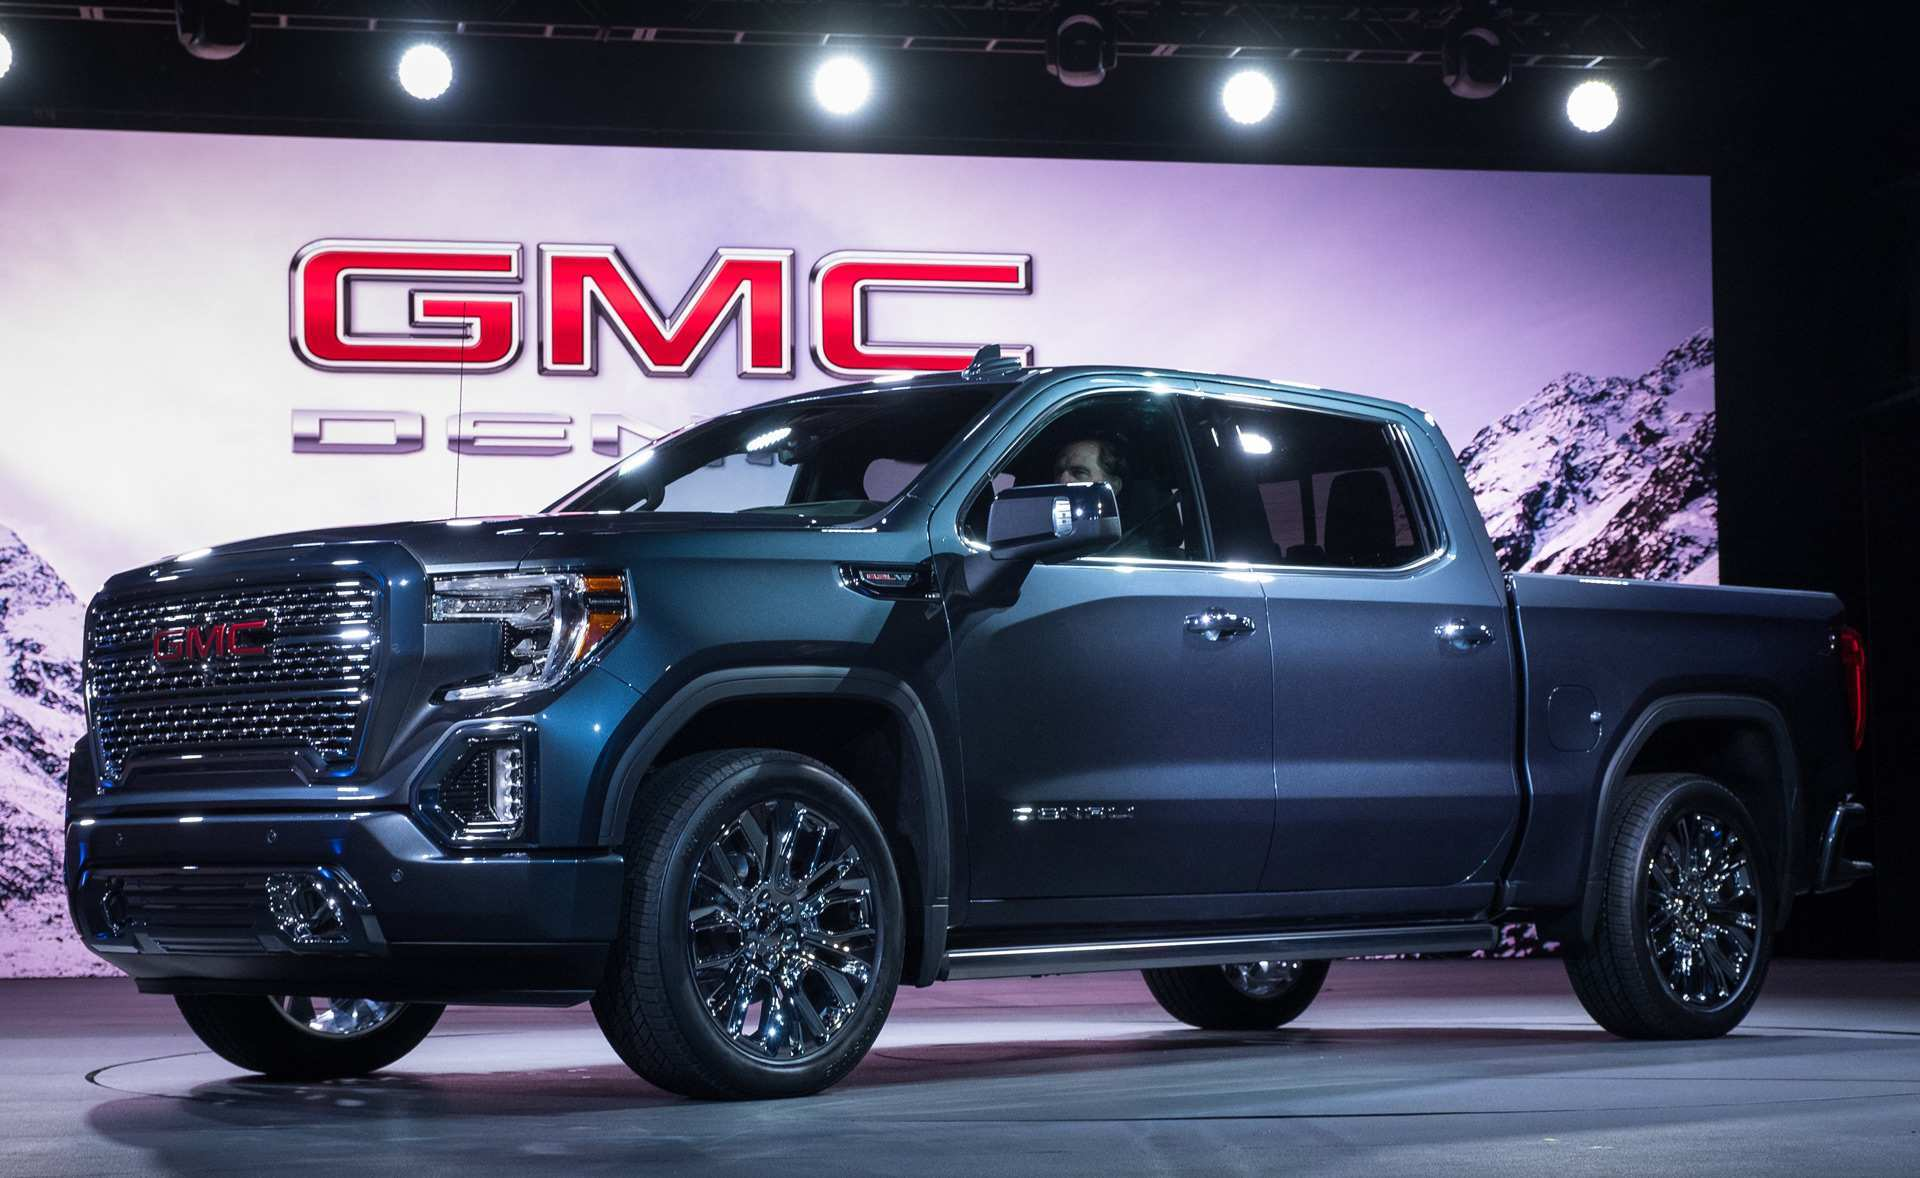 79 Best Review 2020 Gmc Sierra Denali Price and Review with 2020 Gmc Sierra Denali